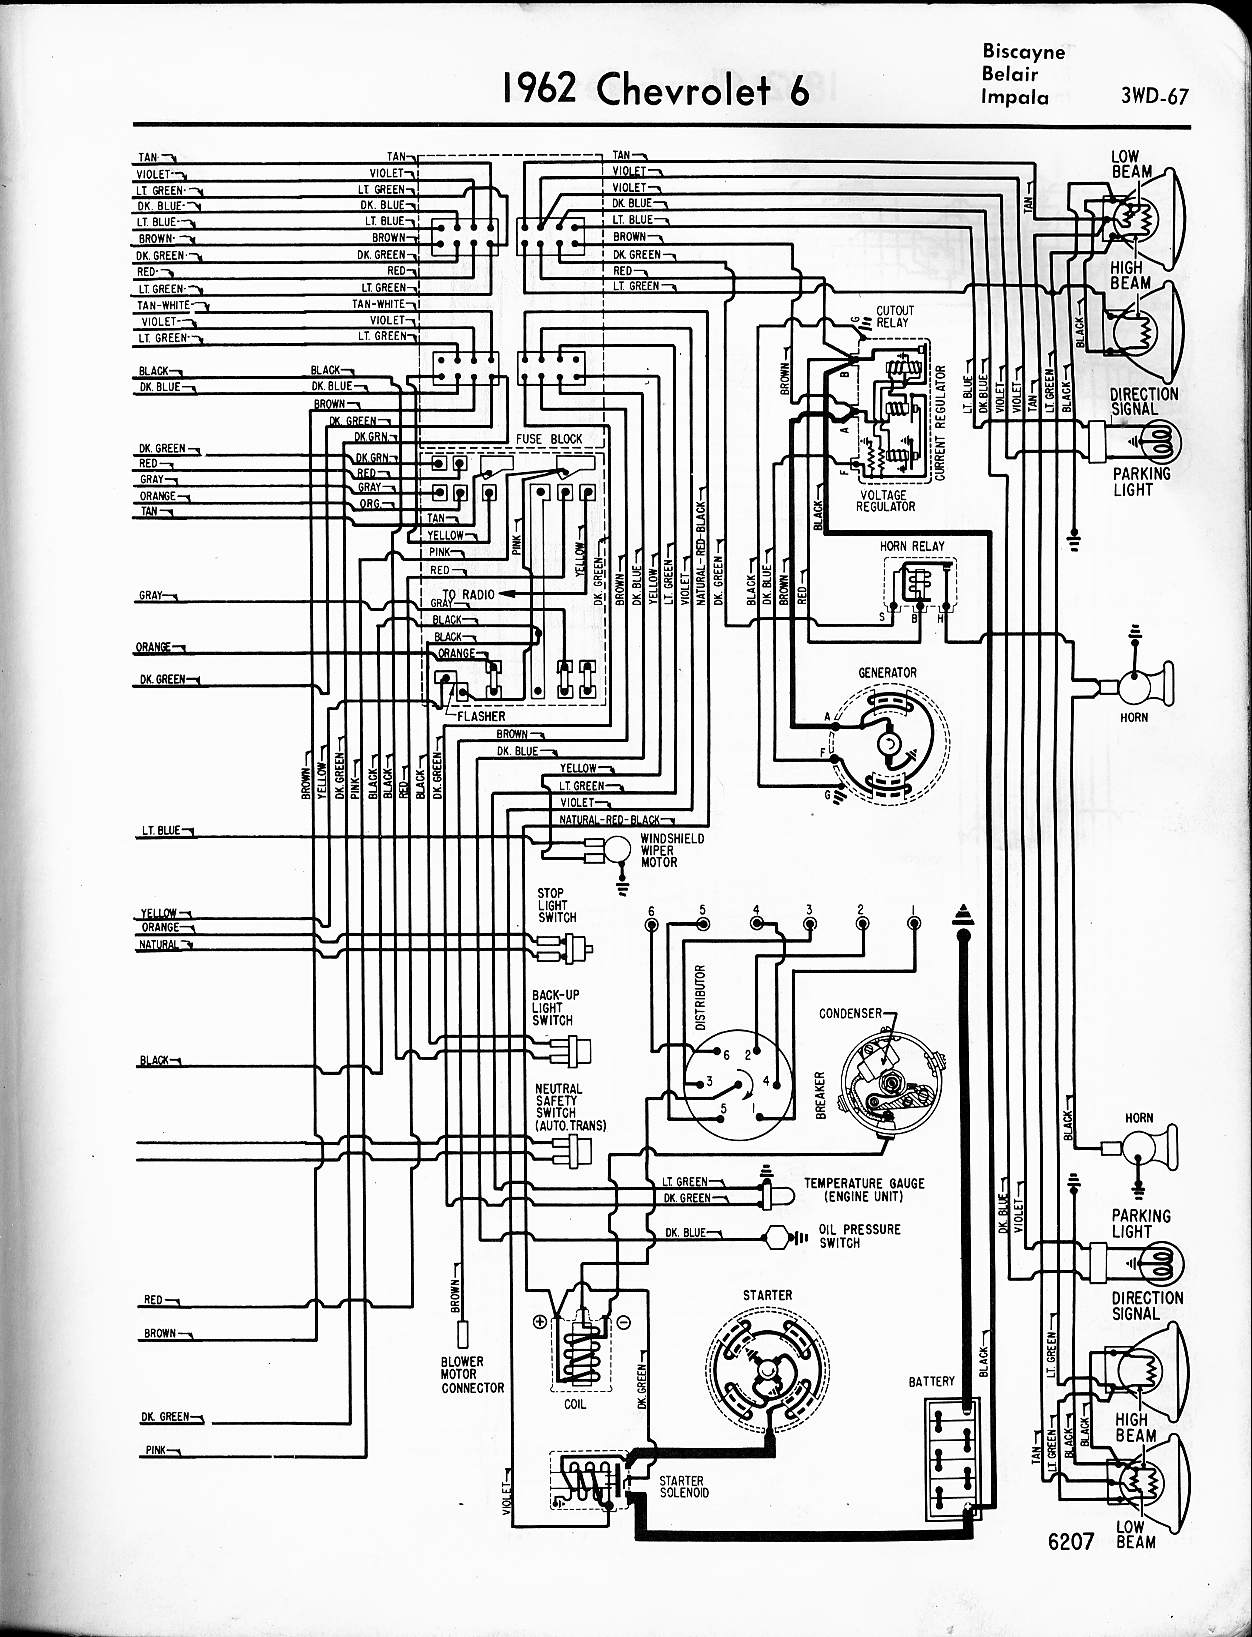 1968 impala wiring diagram wiring diagram 1967 Chevy Impala 1968 impala wiring diagram